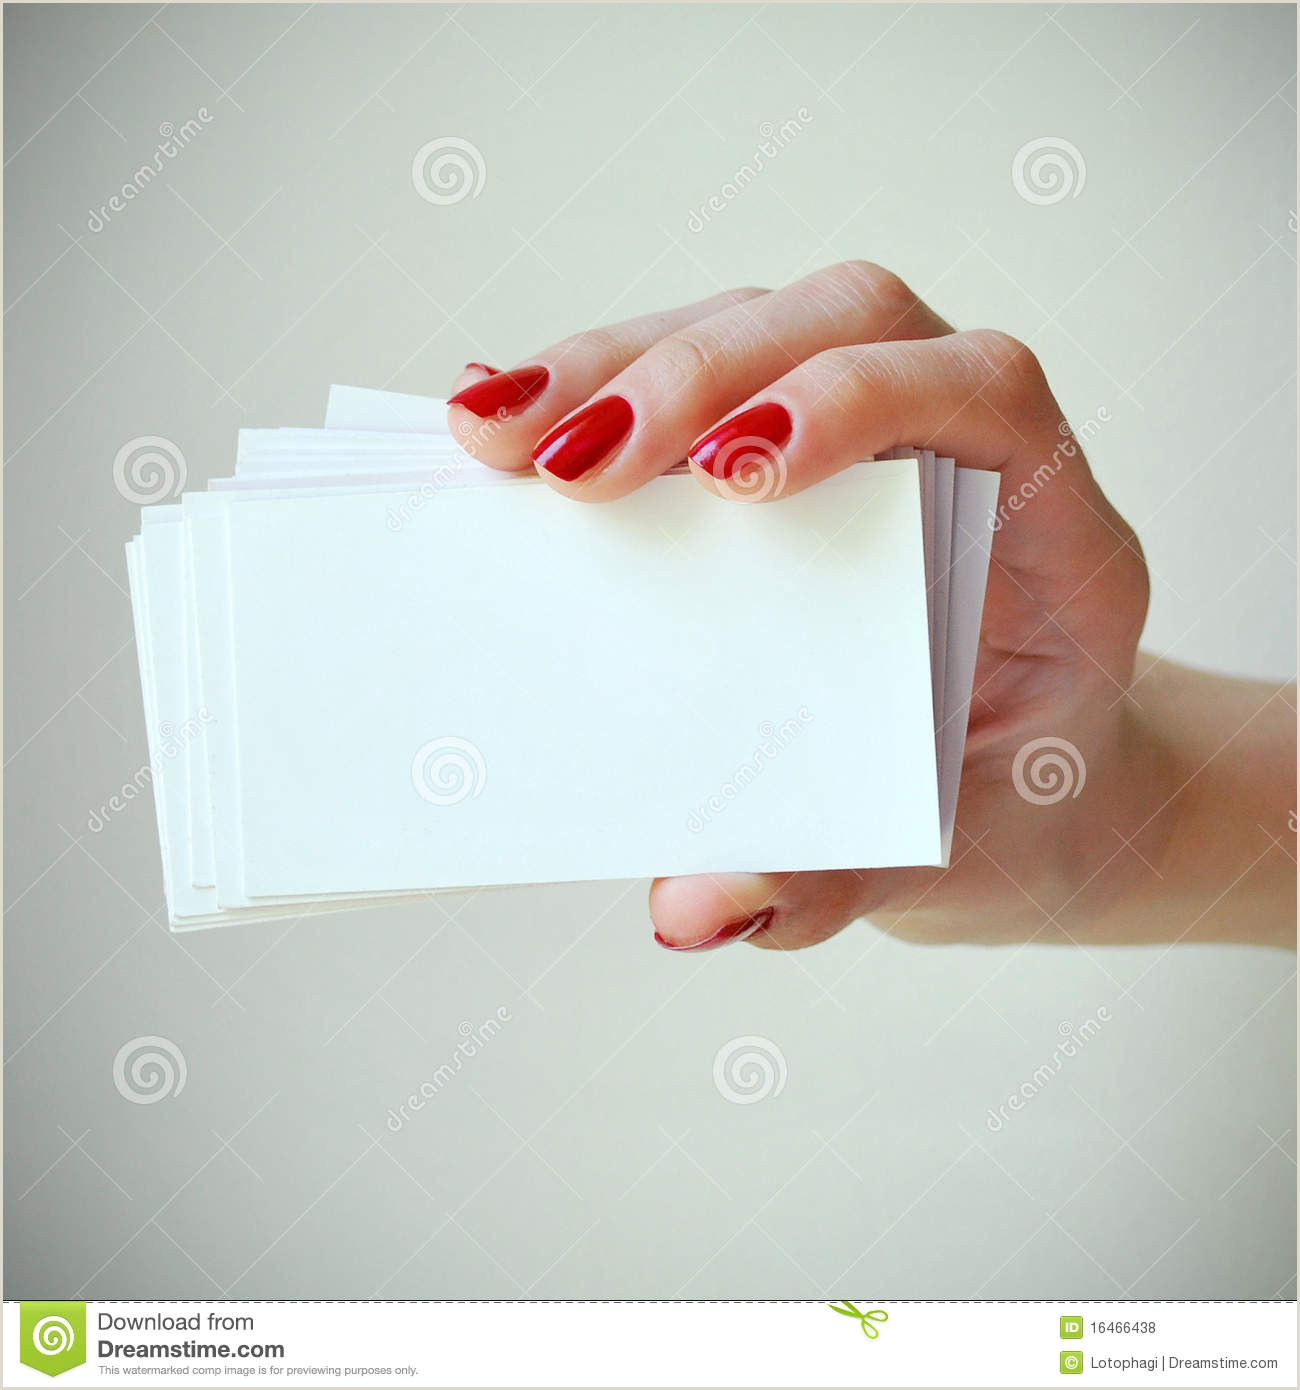 Business Cards Images Free Download 41 901 Business Cards S Free & Royalty Free Stock